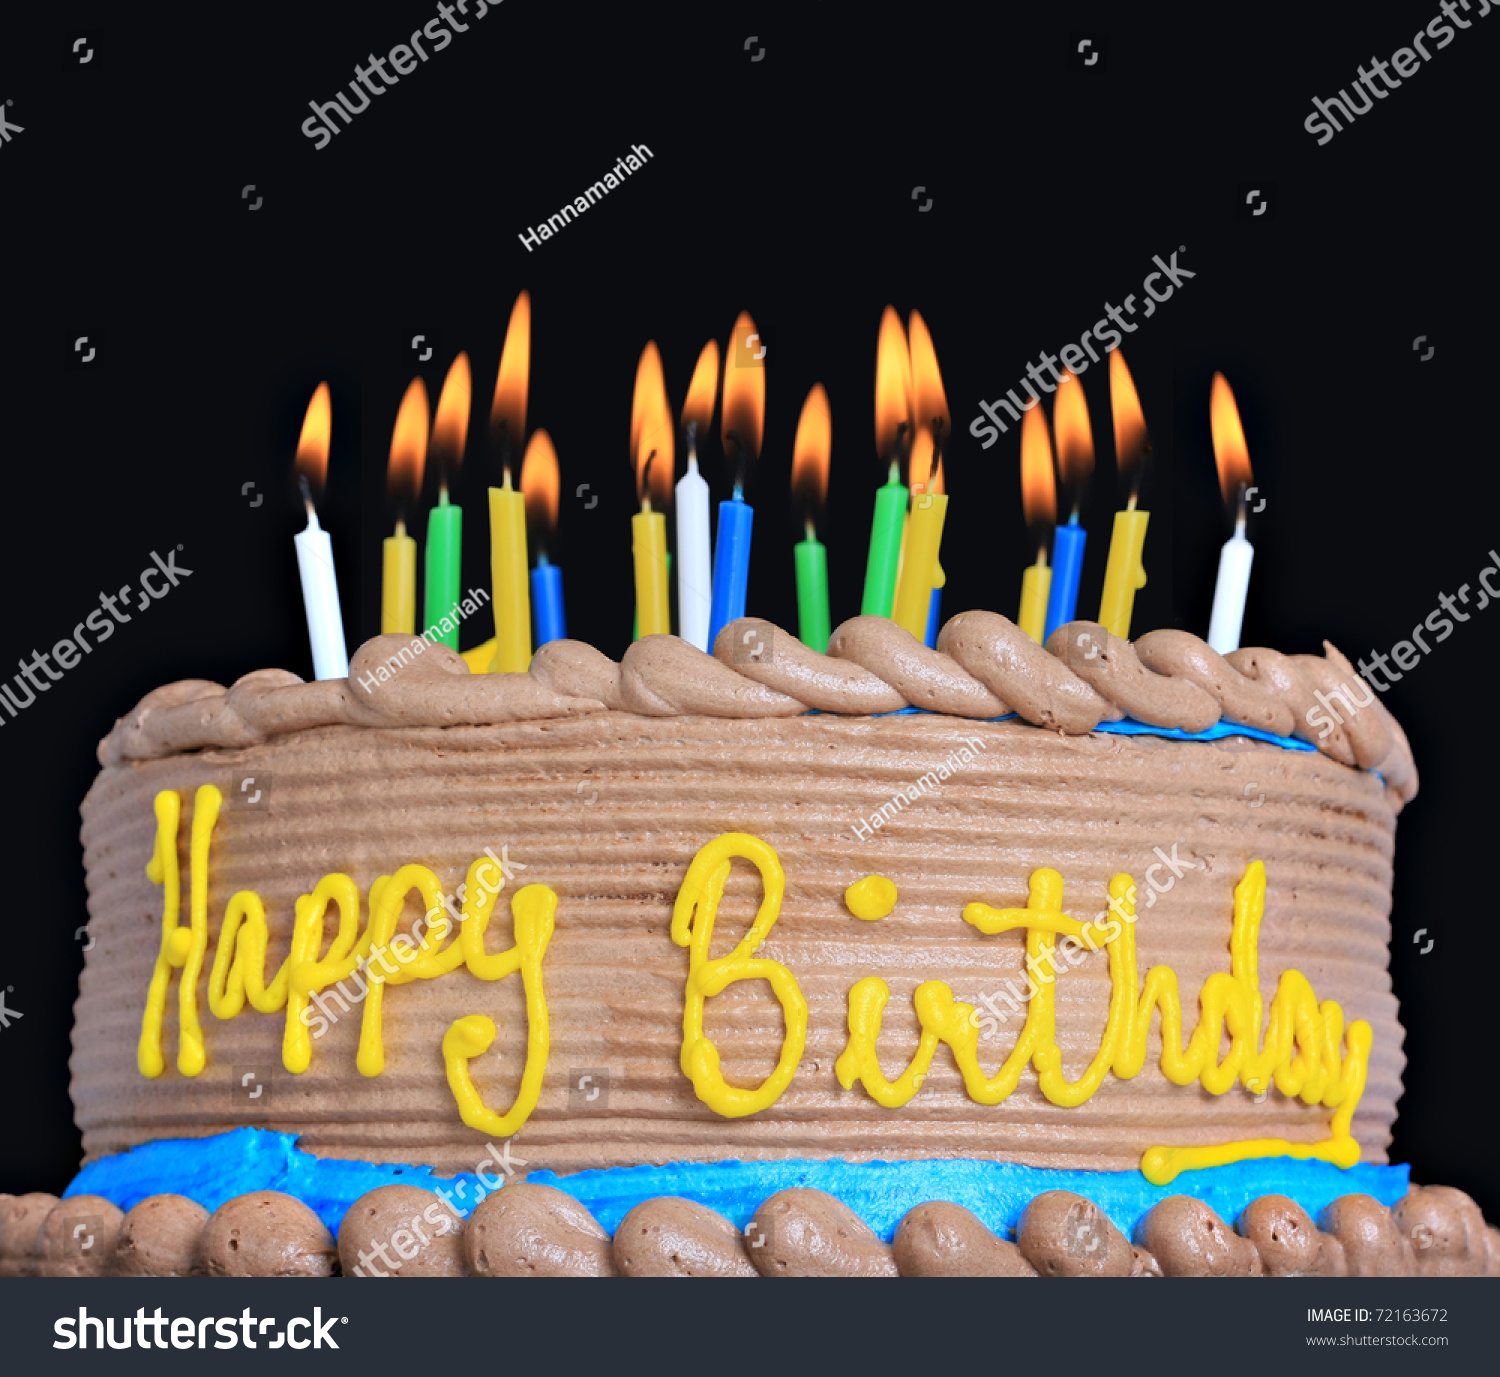 Image result for happy birthday cake with candles